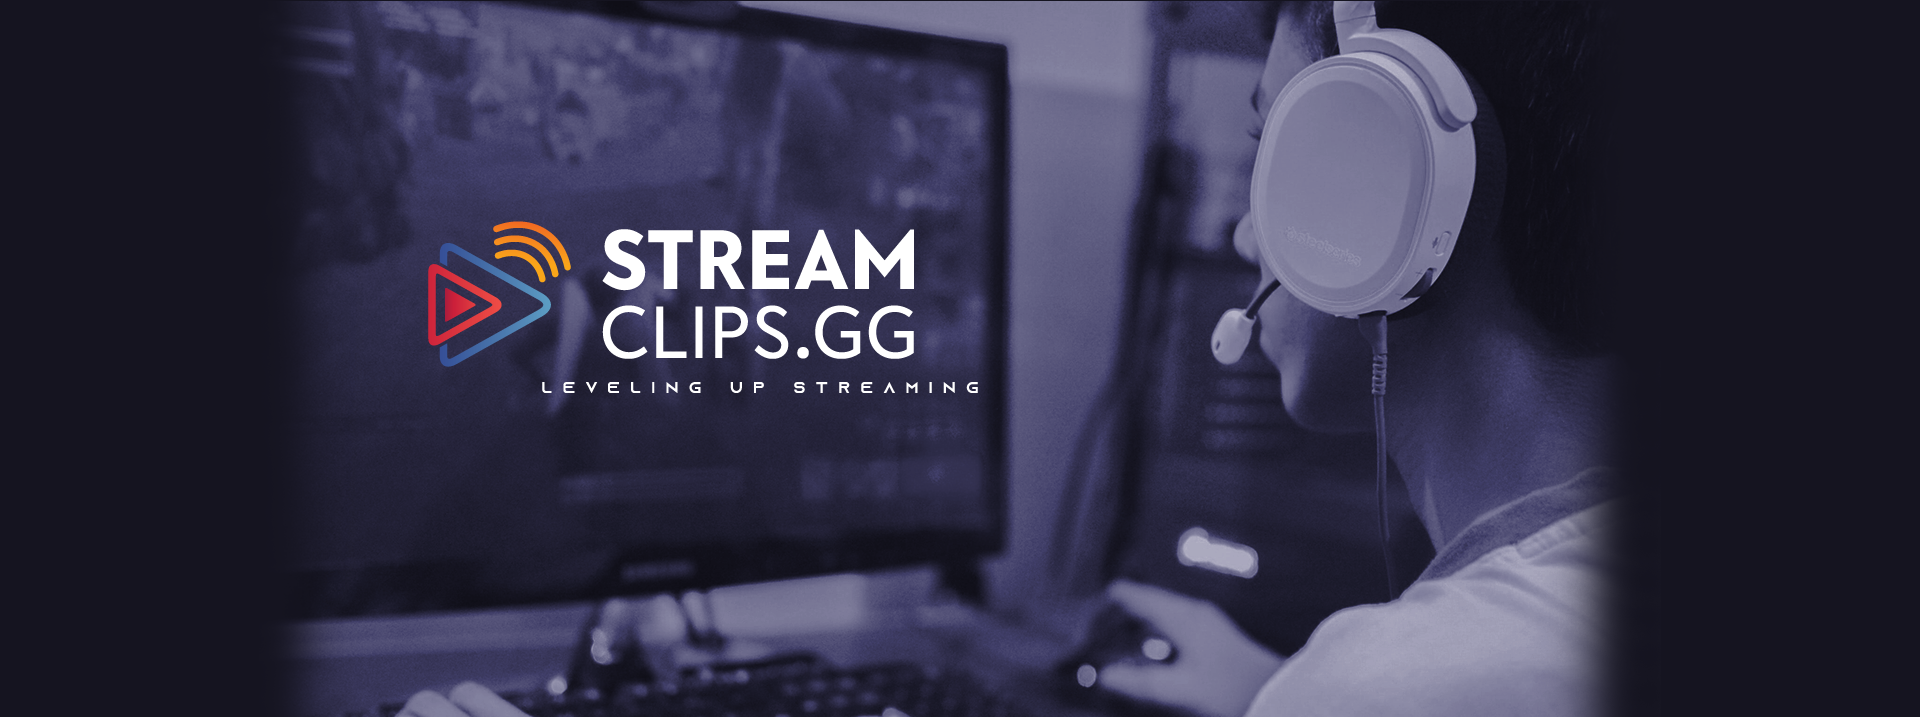 StreamClips.GG - Leveling Up Streaming Banner